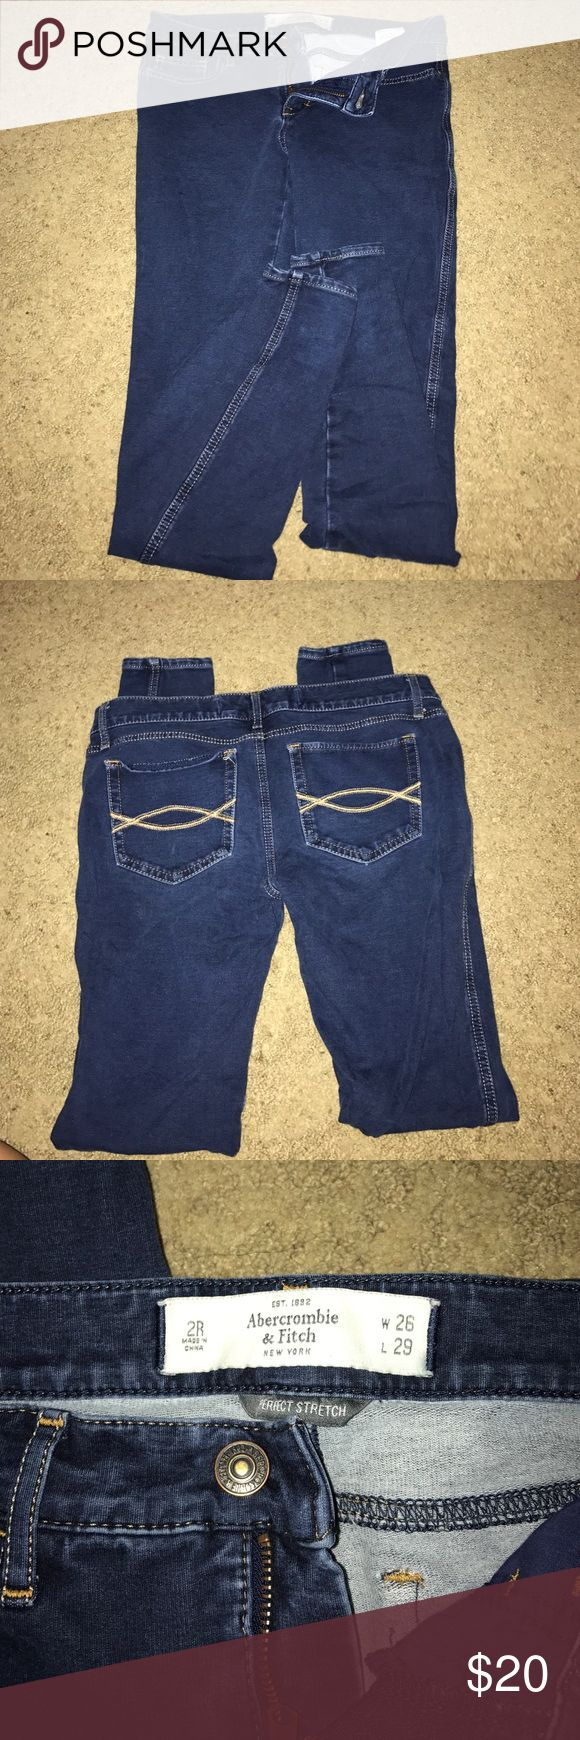 Abercrombie and Fitch Jeans Legging/Jeans Abercrombie and Fitch size 2R Abercrombie & Fitch Jeans Skinny